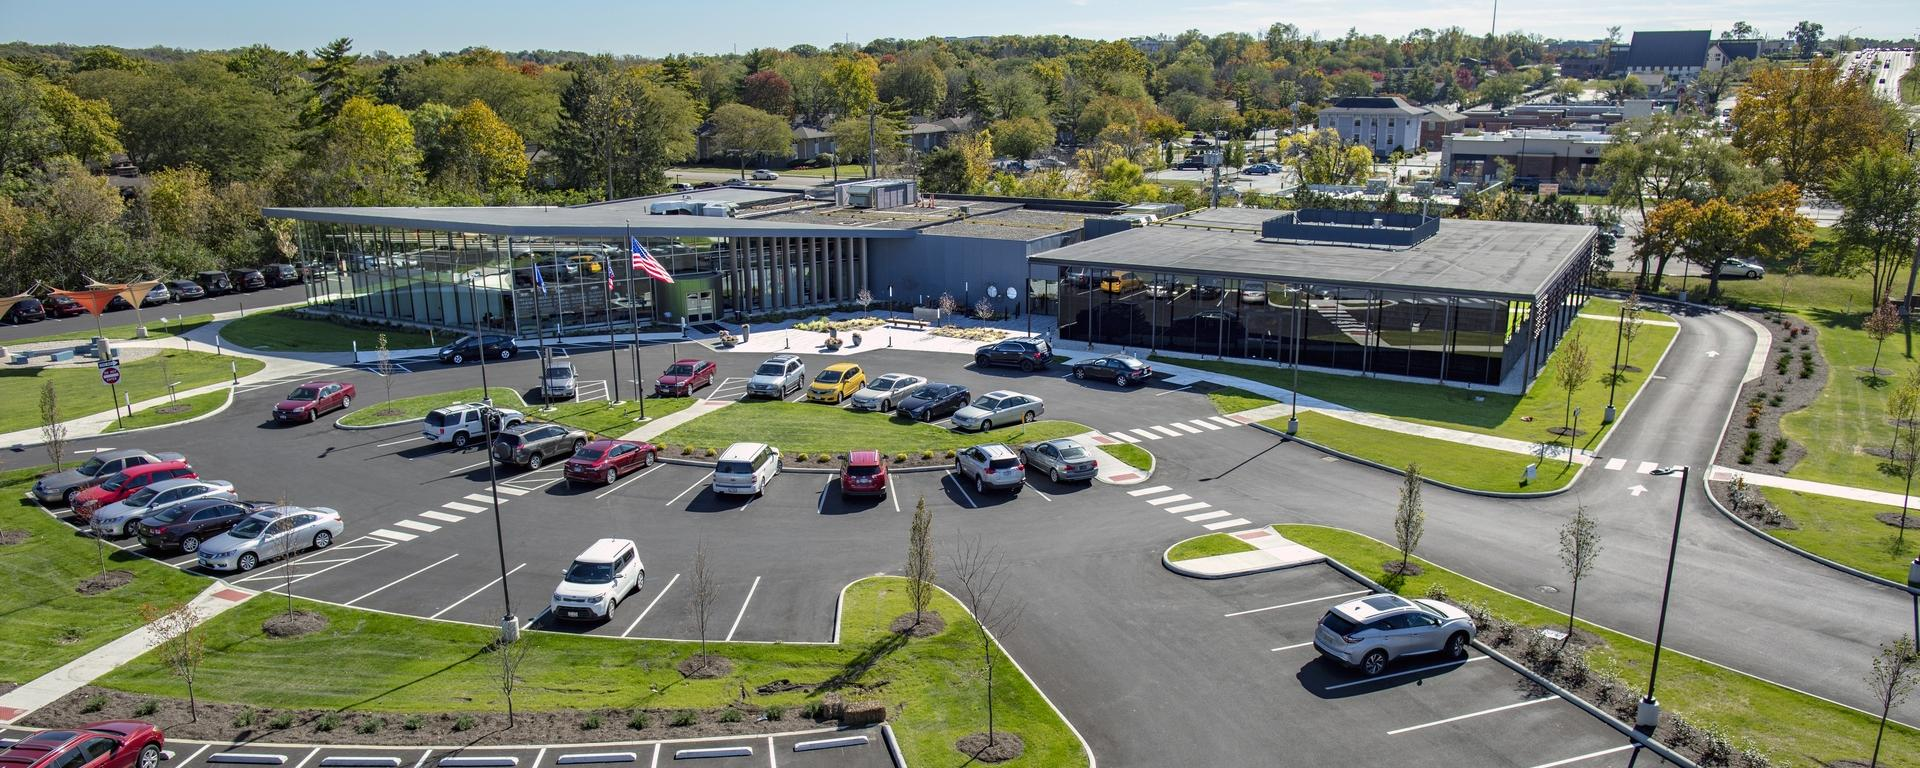 Aerial view of Woodbourne Library